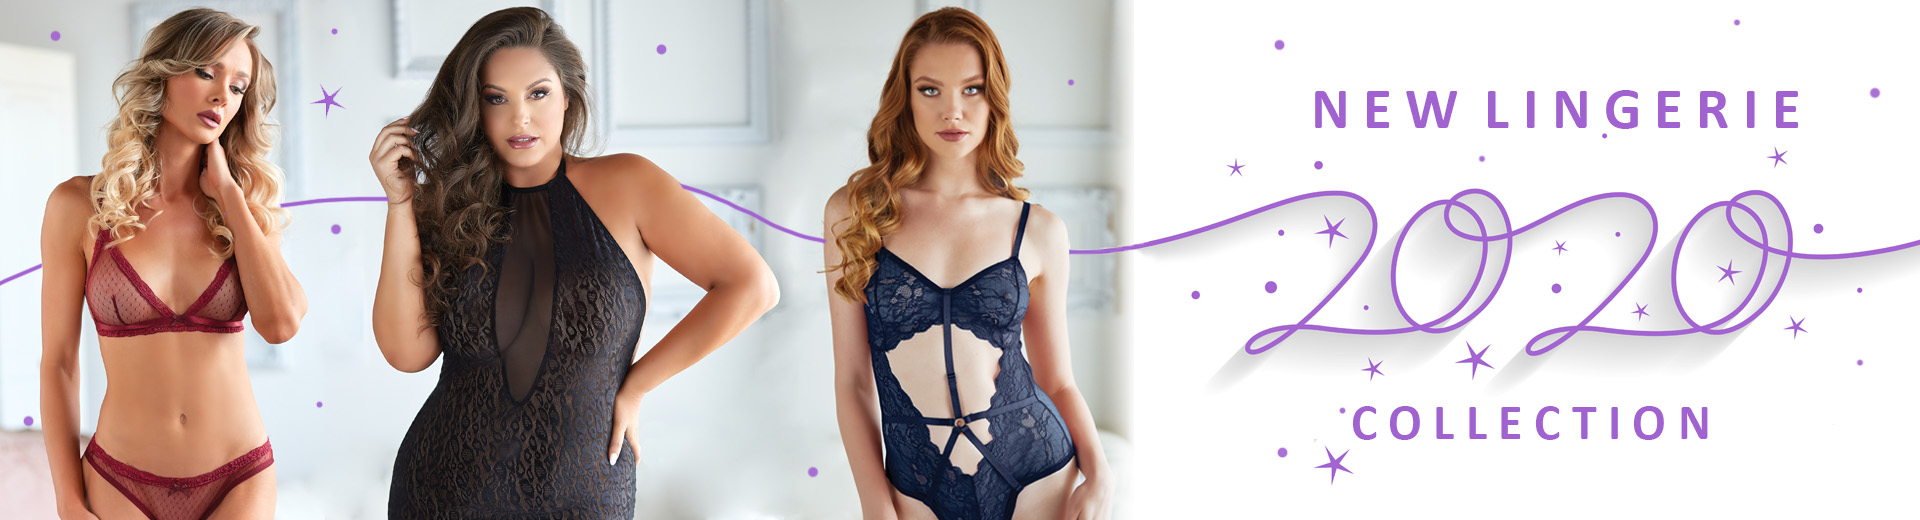 new lace lingerie collection 2020 mystrippercloset